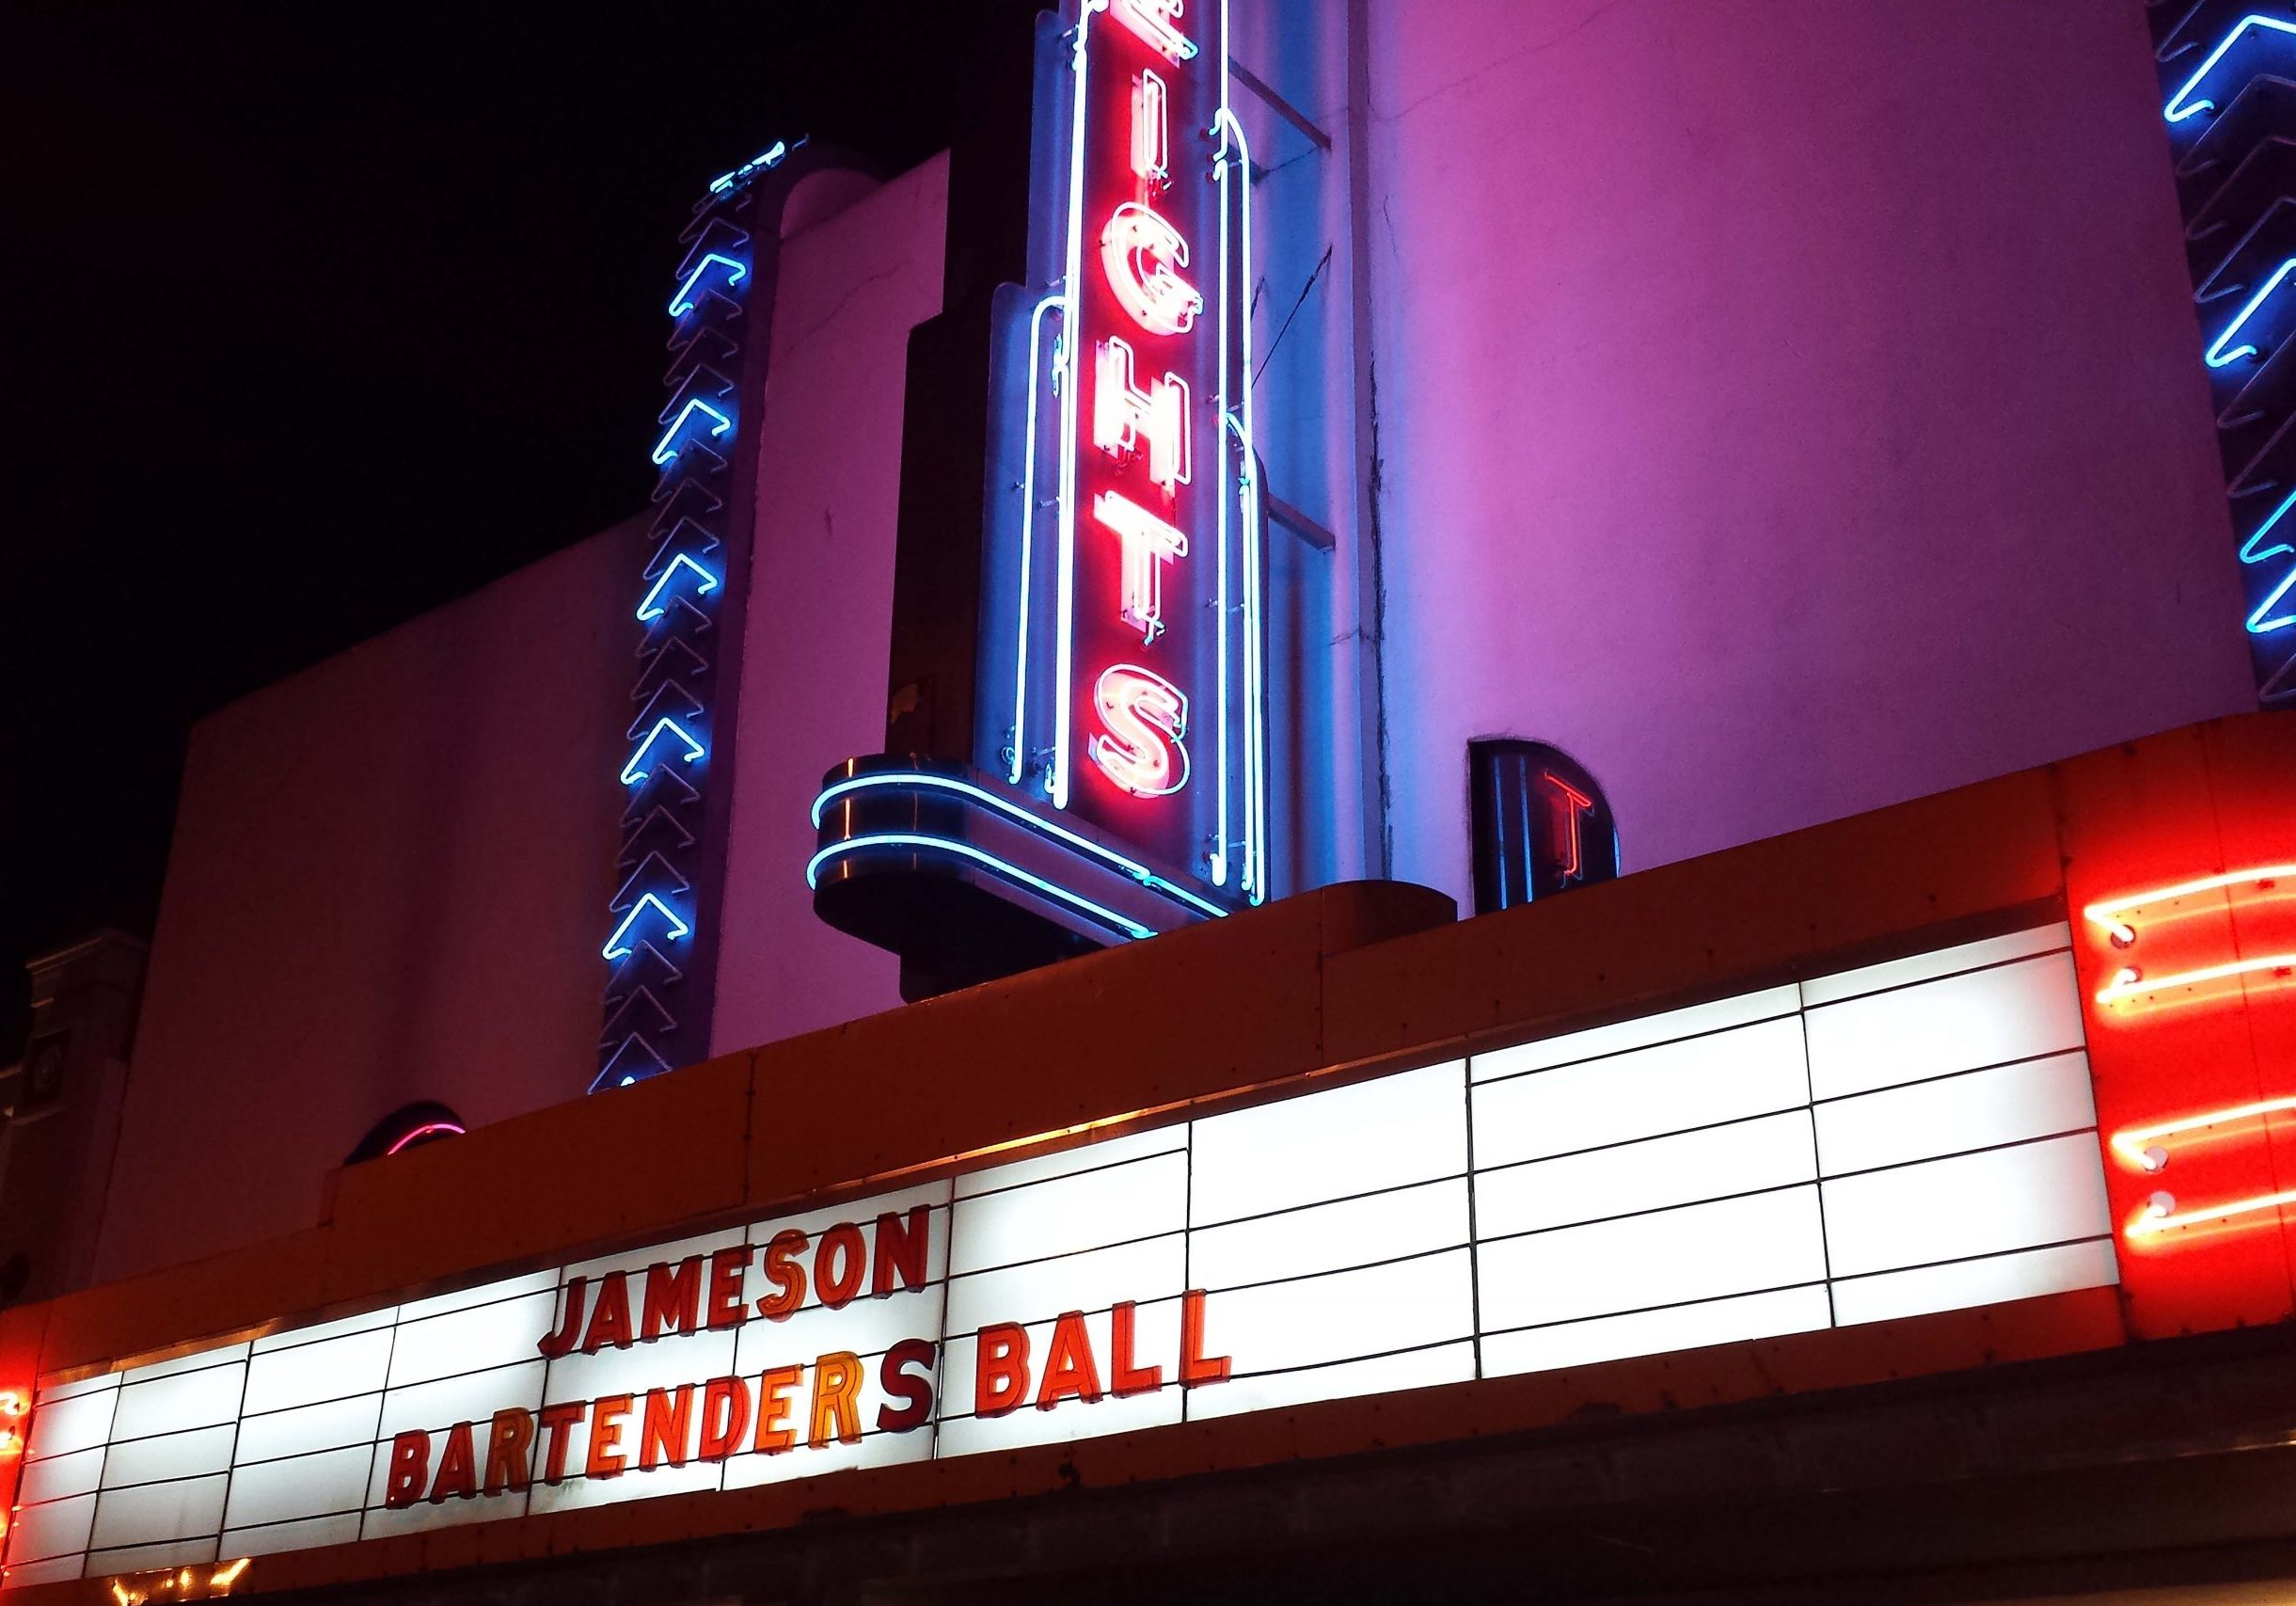 jameson bartenders ball heights theater outside ala carte events catering houston